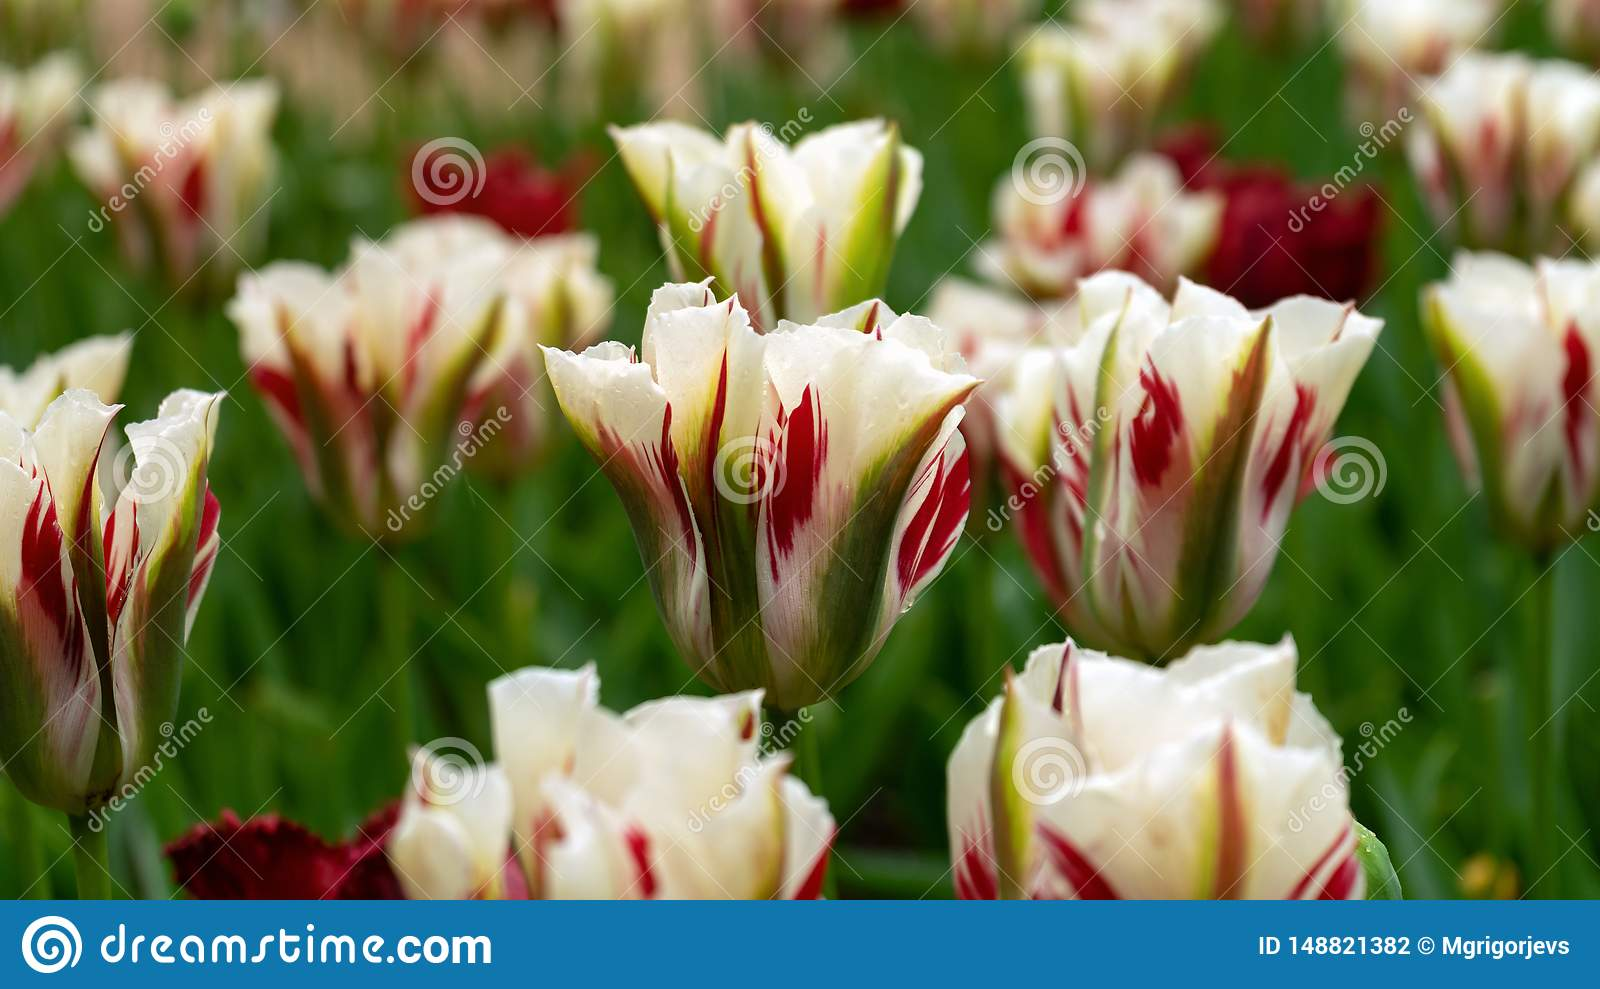 White, red and green Viridiflora Tulips in the garden